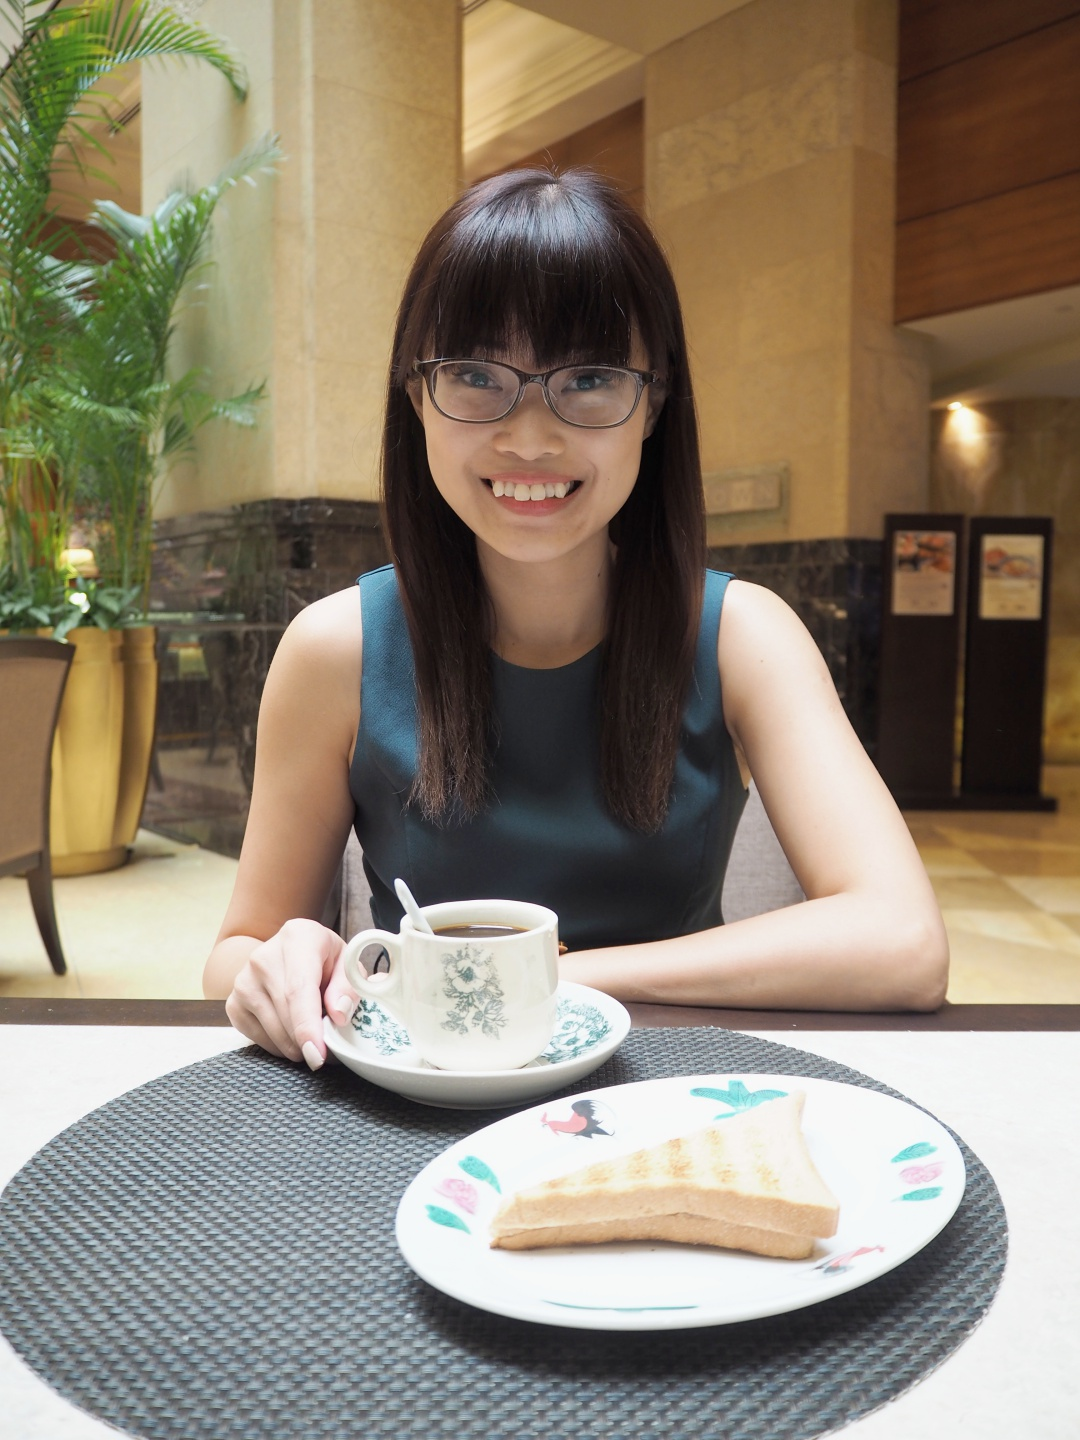 The Fullerton Hotel Singapore Breakfast | joanne-khoo.com